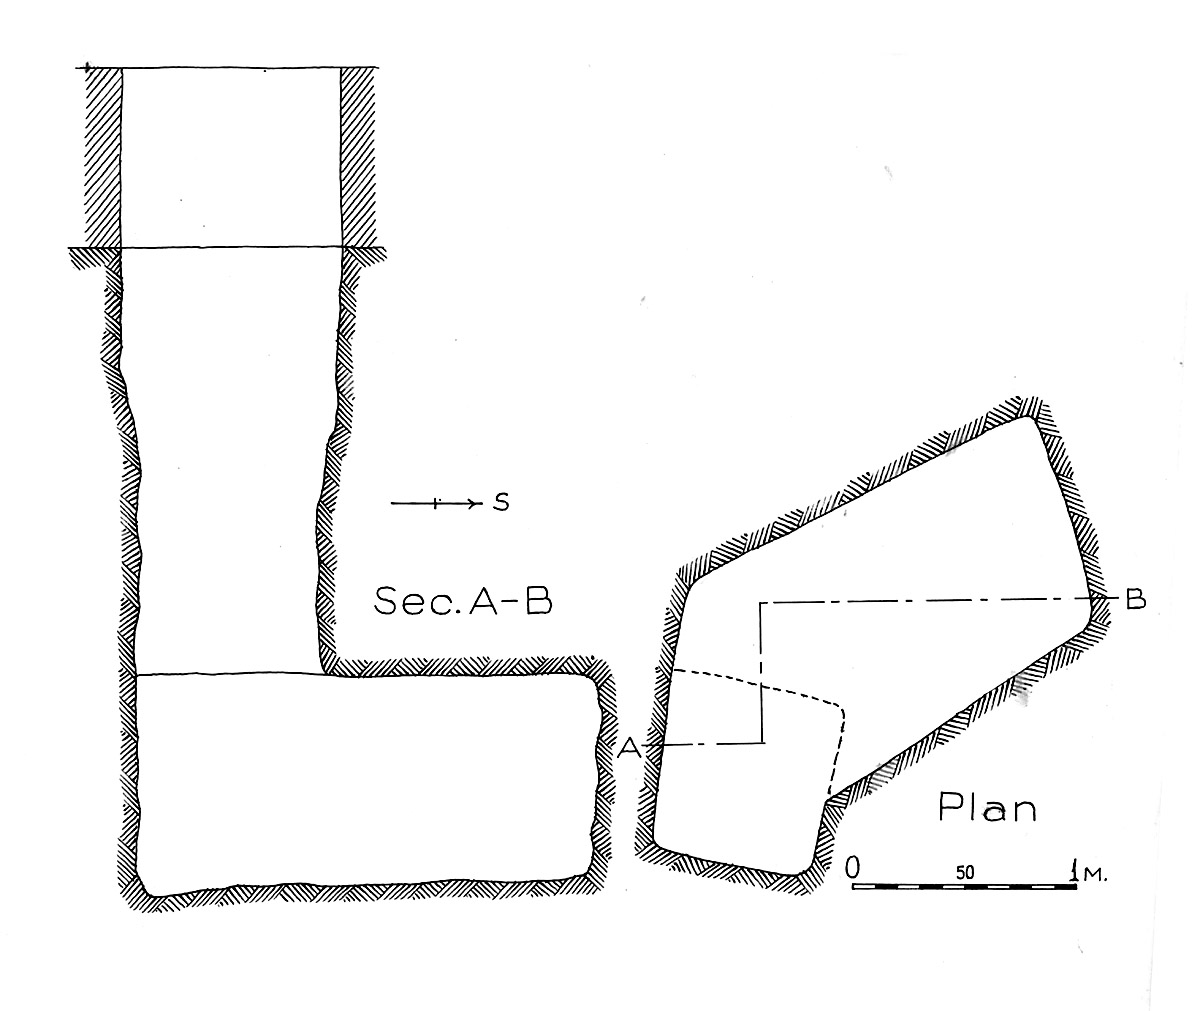 Maps and plans: G 1602, Shaft A